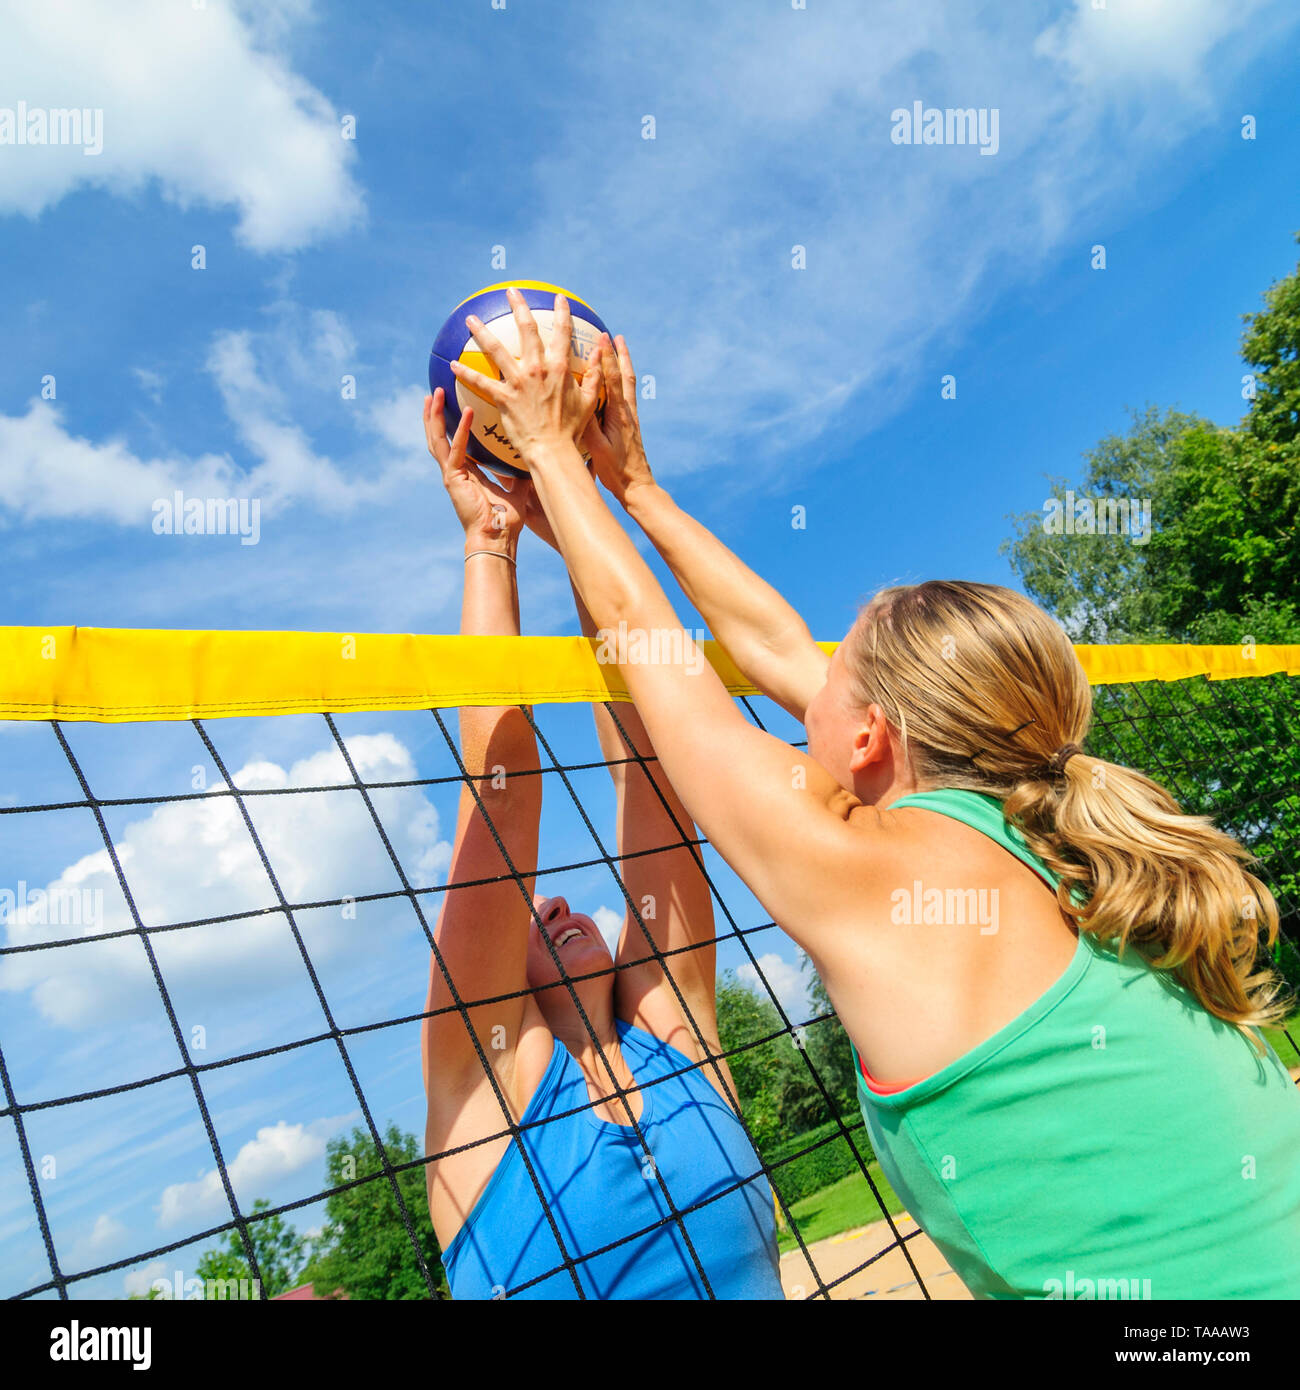 Competitive game on beachvolleyball court at the net - Stock Image